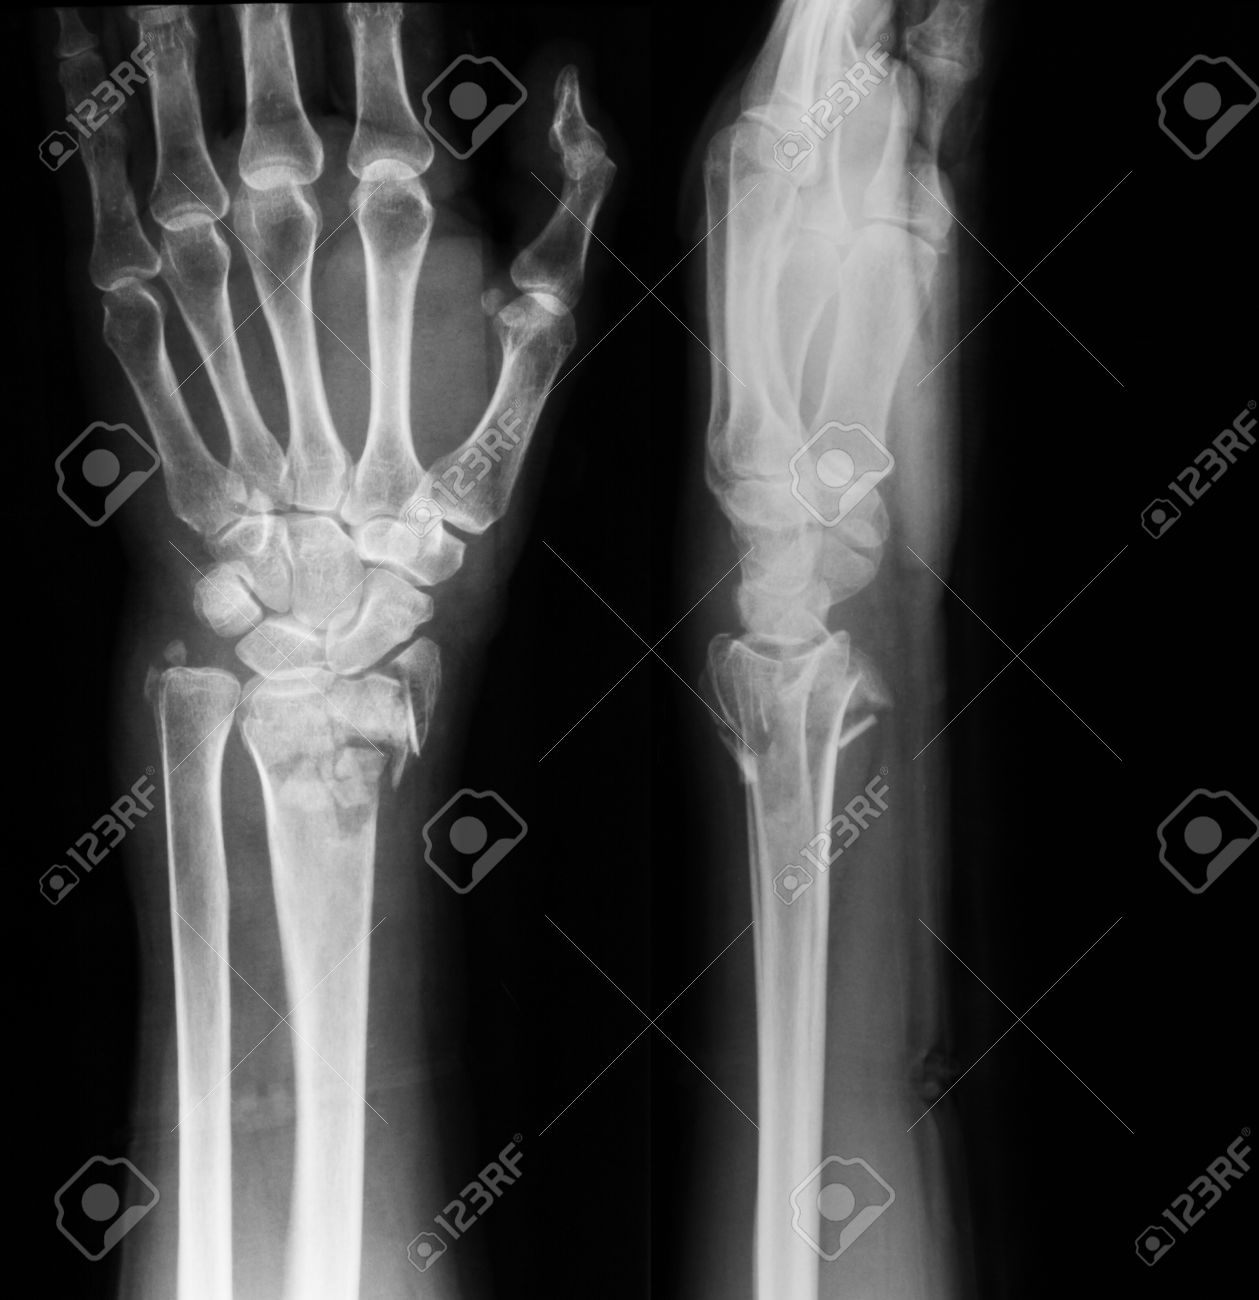 X-ray Image Of Wrist Joint, PA And Lateral View, Showing Ulna ...